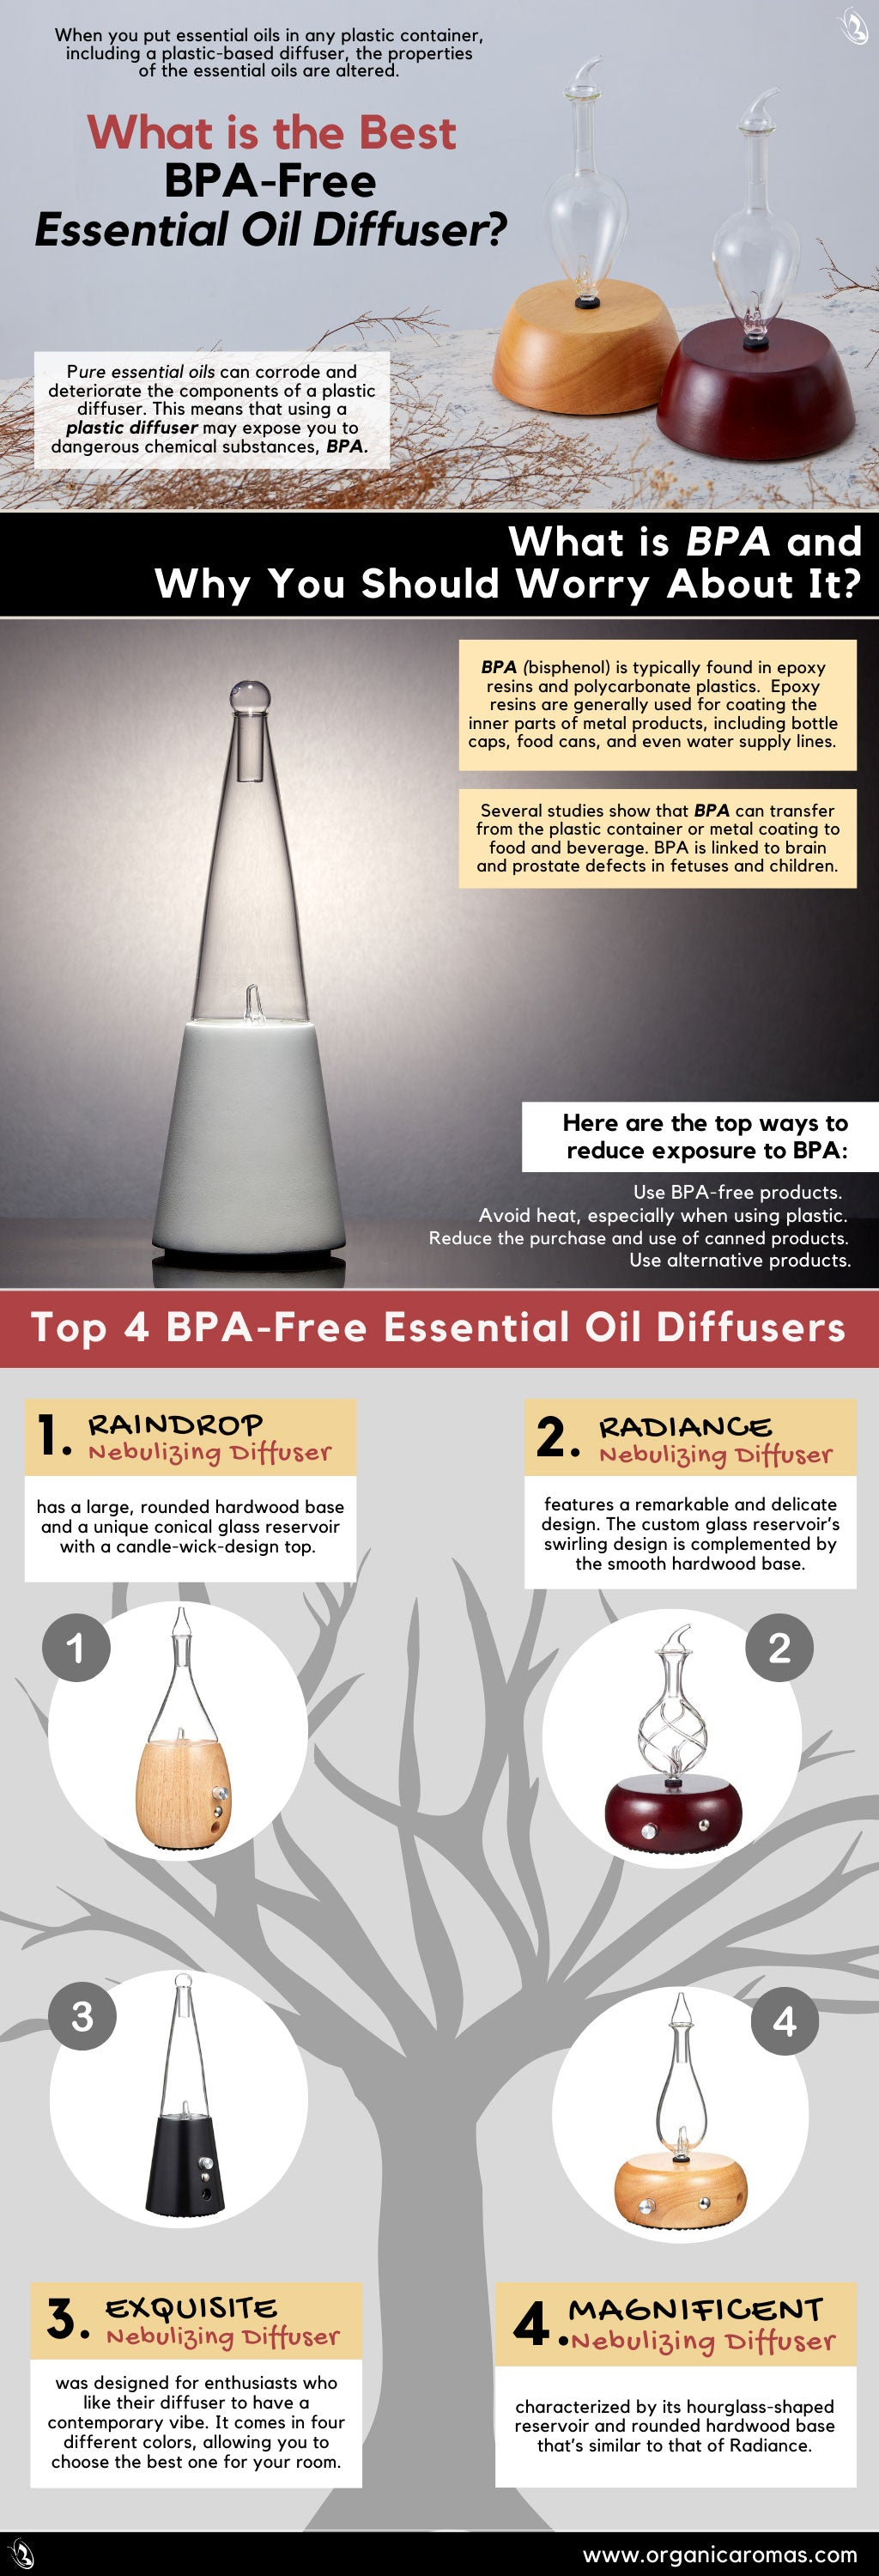 What is the Best BPA-Free Essential Oil Diffuser?